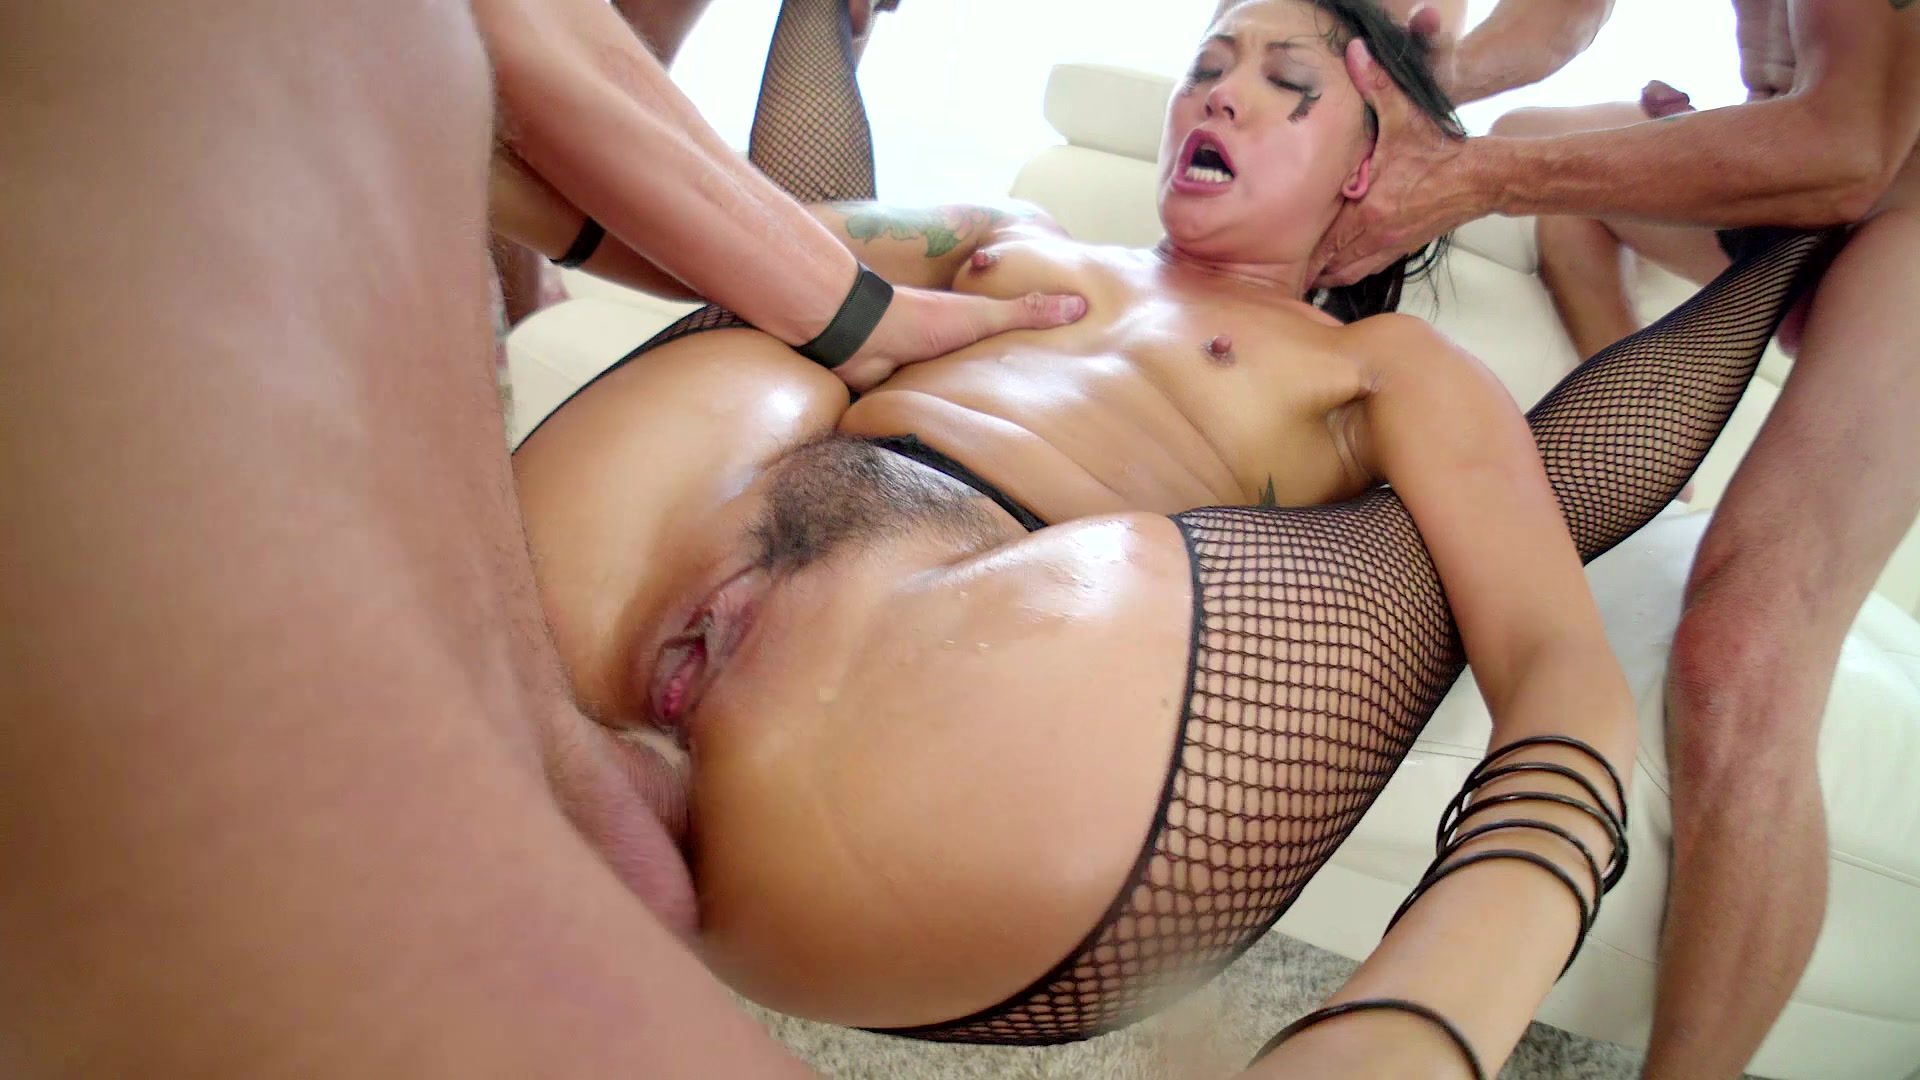 anal-crazy-sex-hypnotic-sexual-black-female